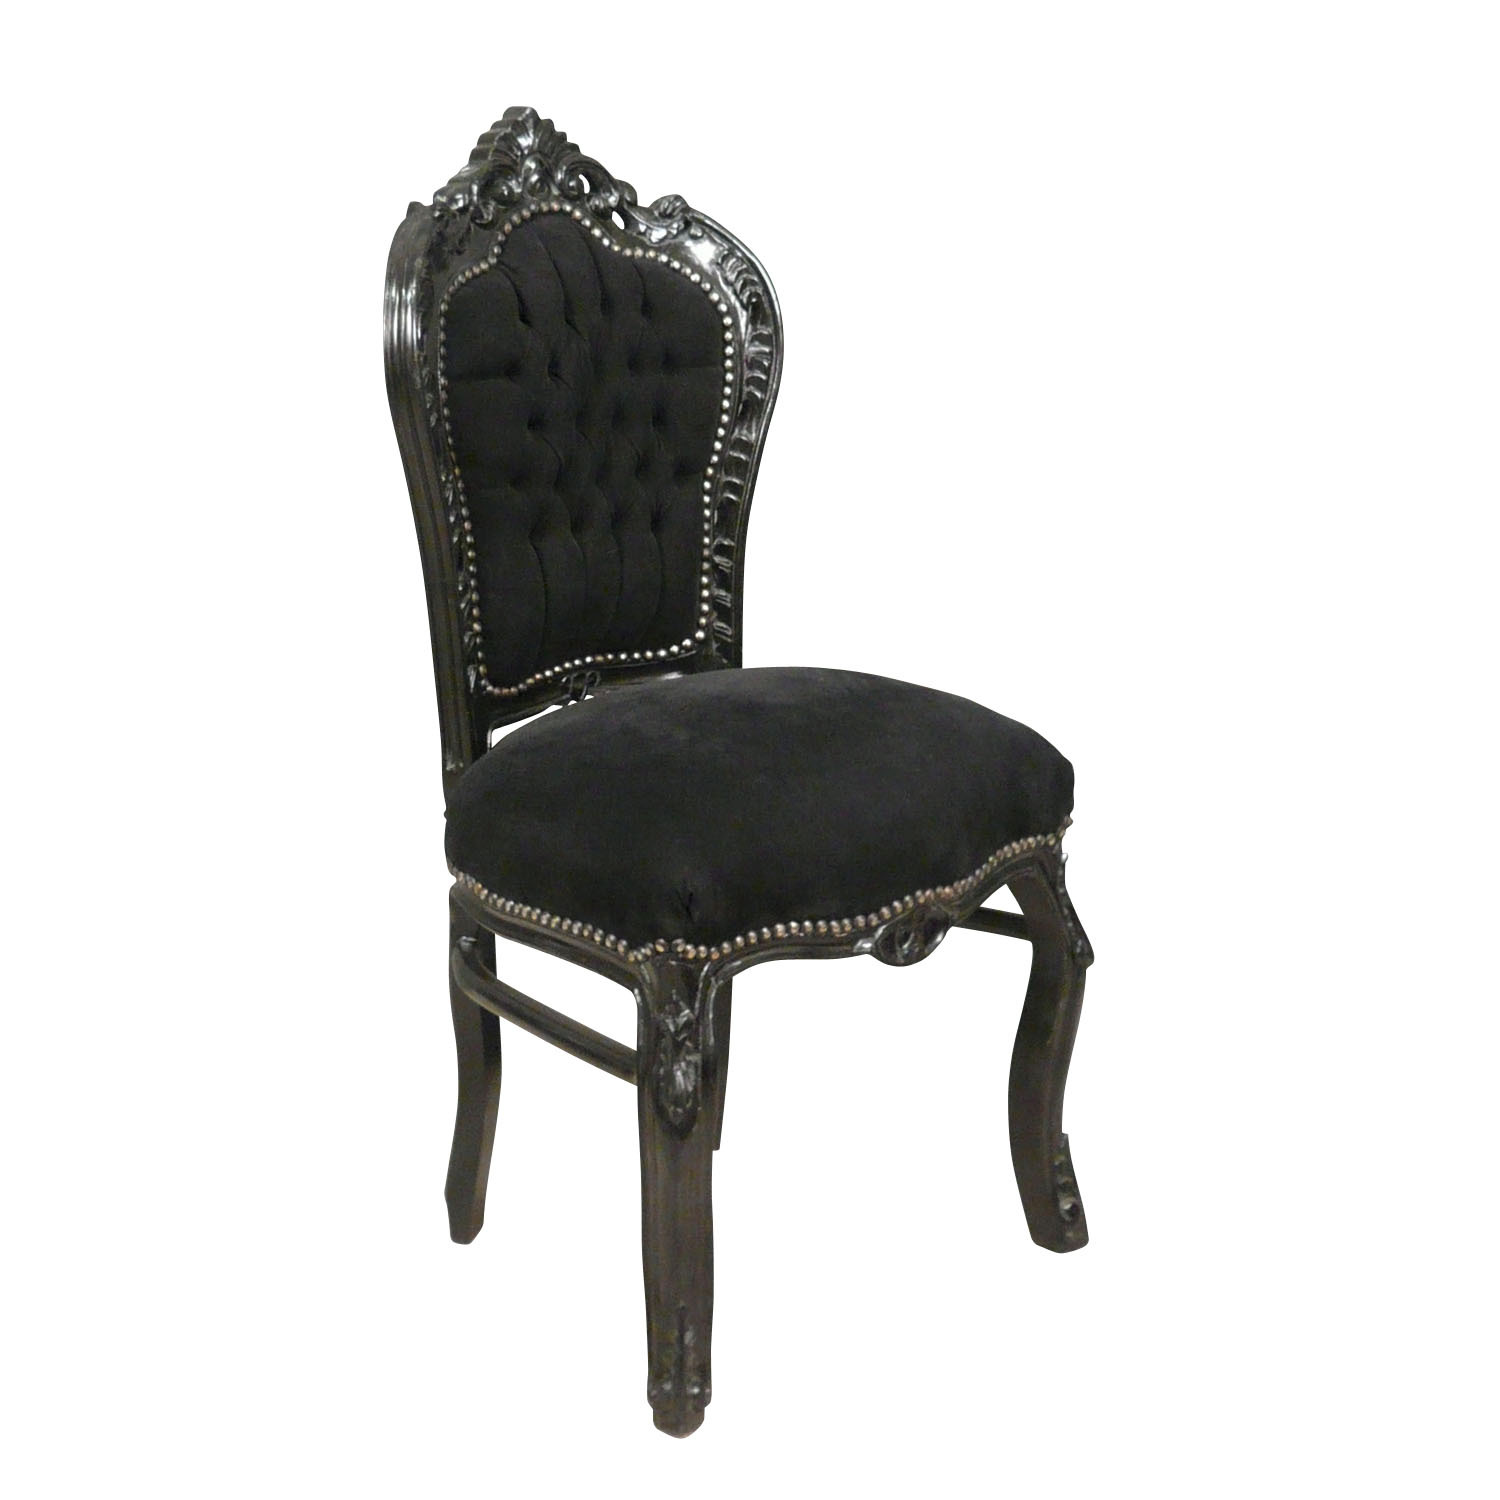 chaise baroque galerie photos royal d corations. Black Bedroom Furniture Sets. Home Design Ideas